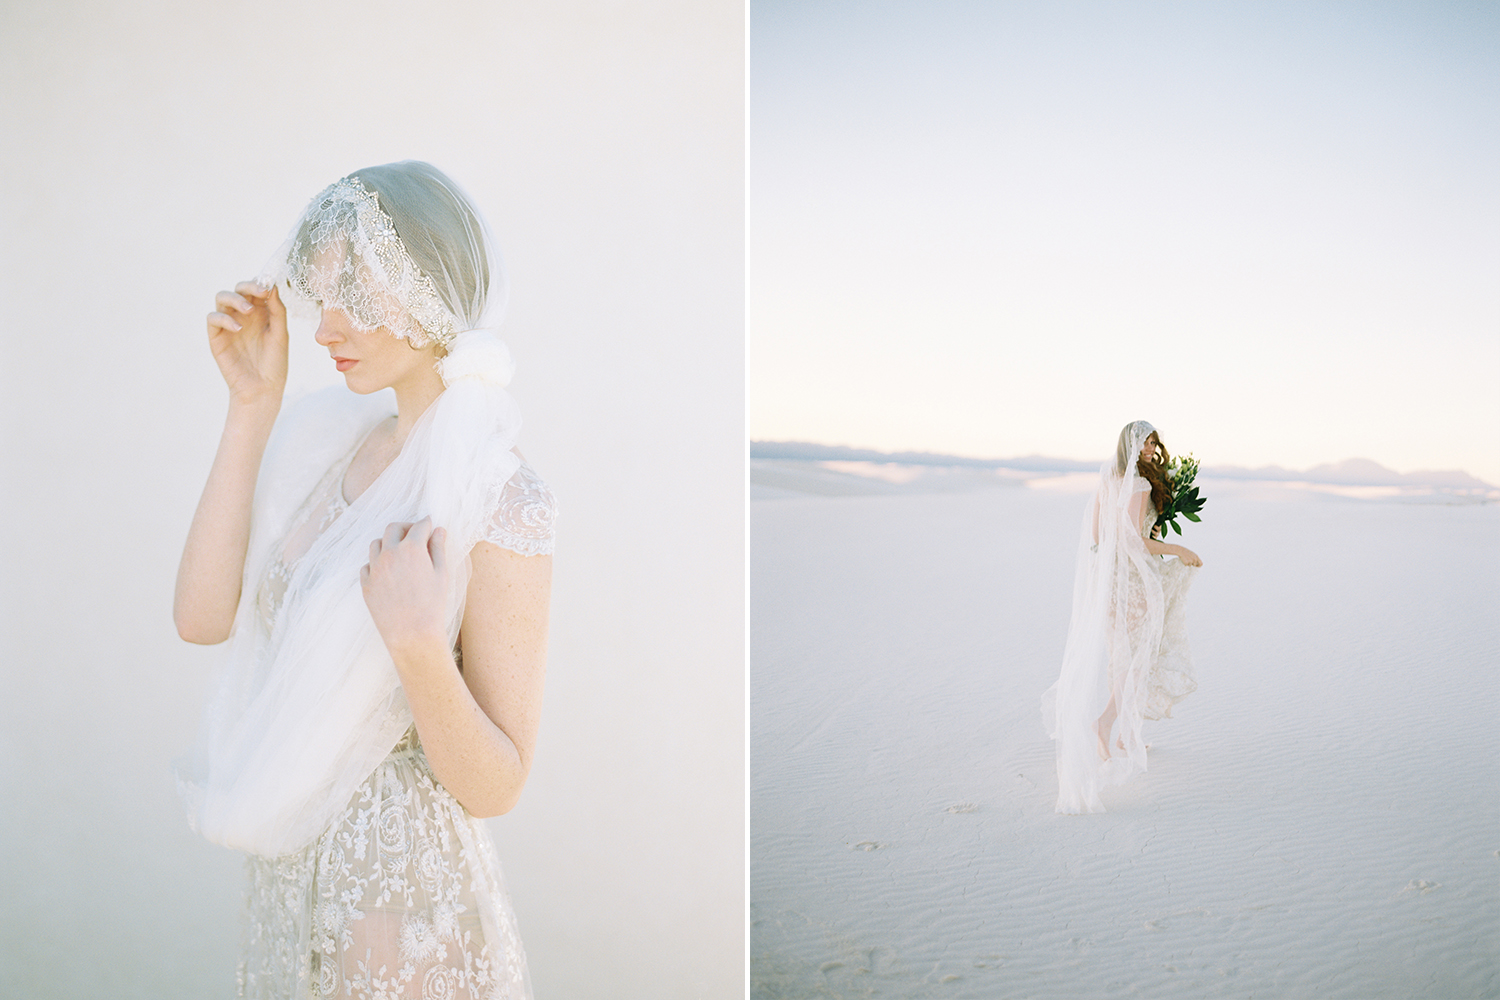 SIBO Designs - How to find the perfect veil for your bridal style - www.sibodesigns.com